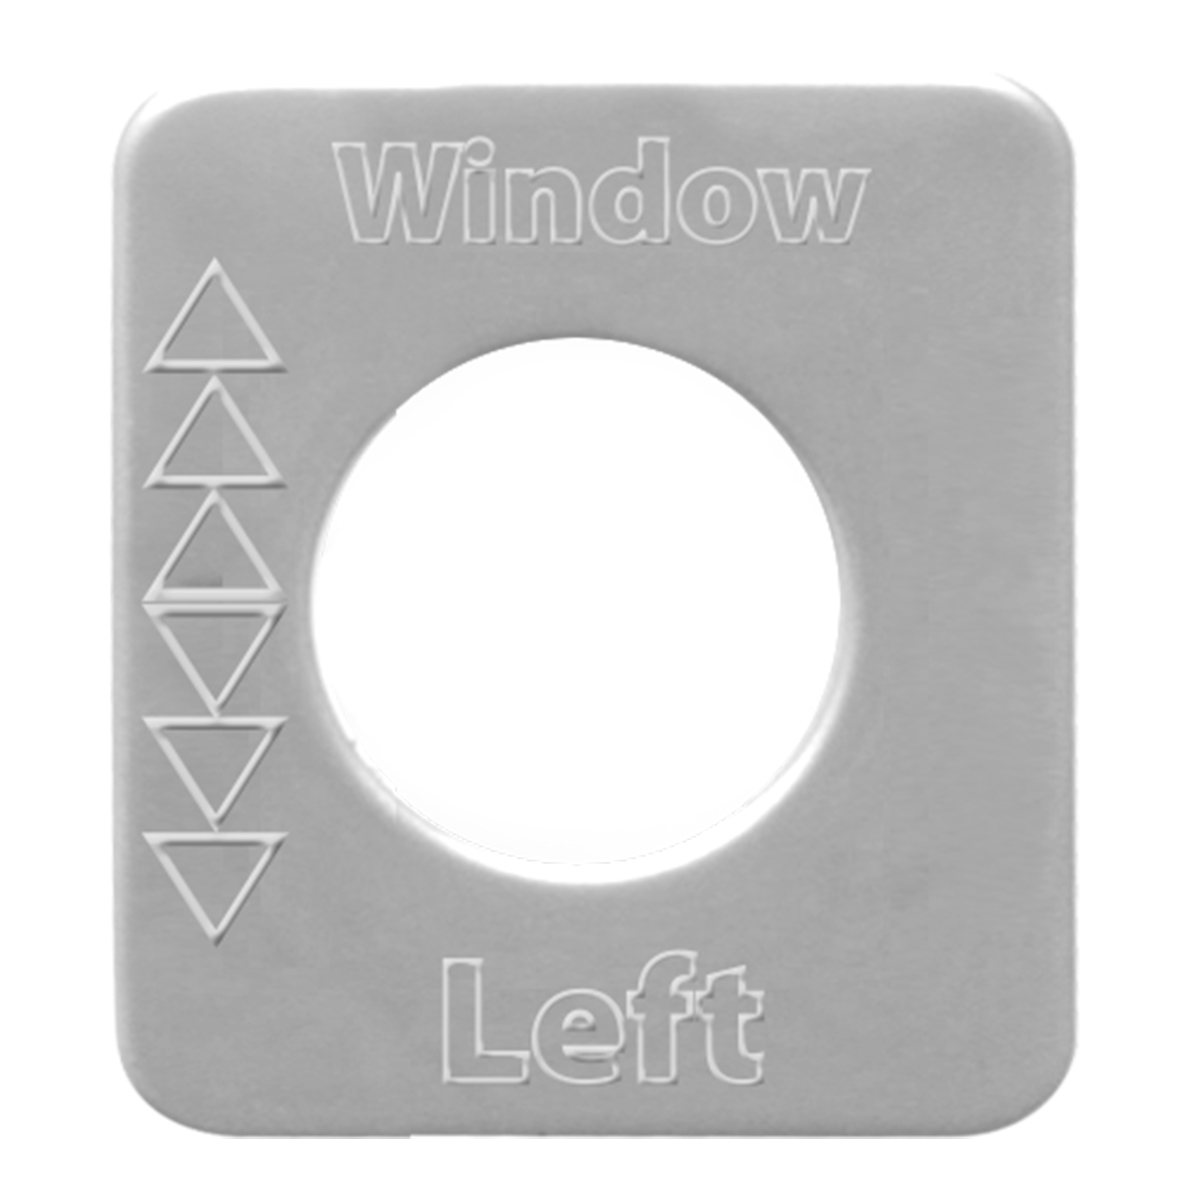 68545 Stainless Steel Left Window Switch Plate for KW